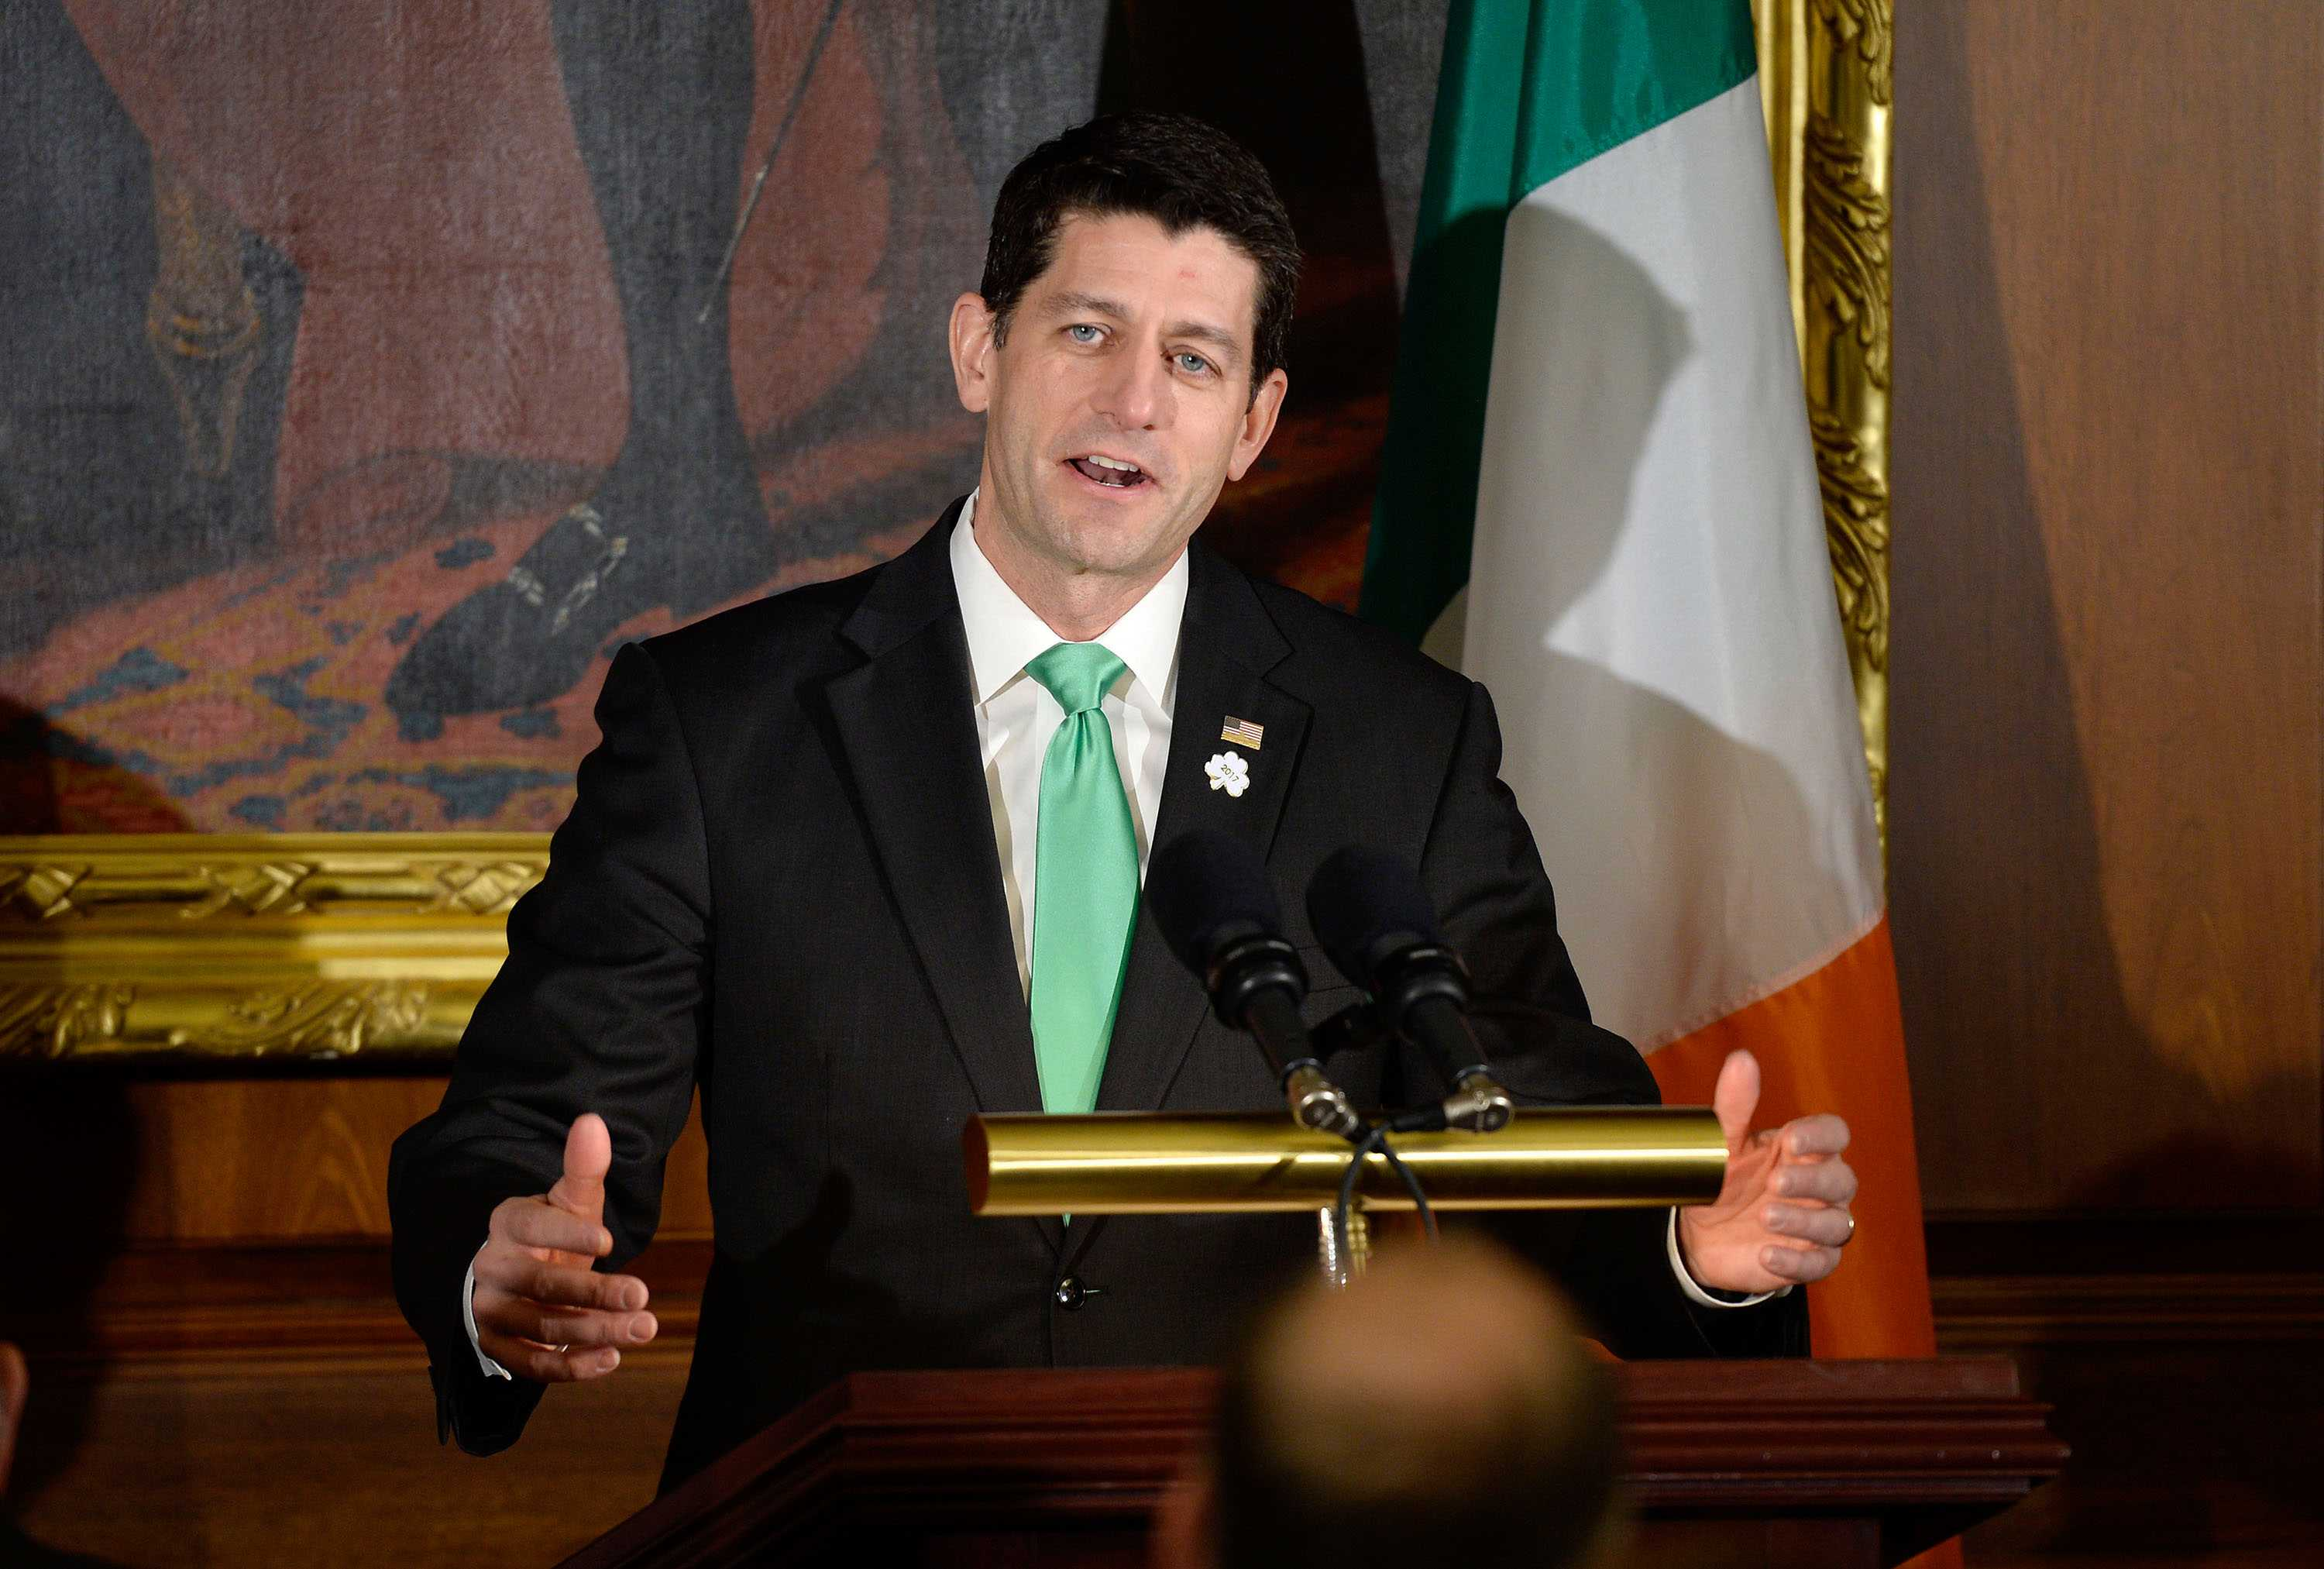 House Speaker Paul Ryan speaks during the Friends of Ireland Luncheon at the U.S. Capitol on March 16, 2017 in Washington, D.C.